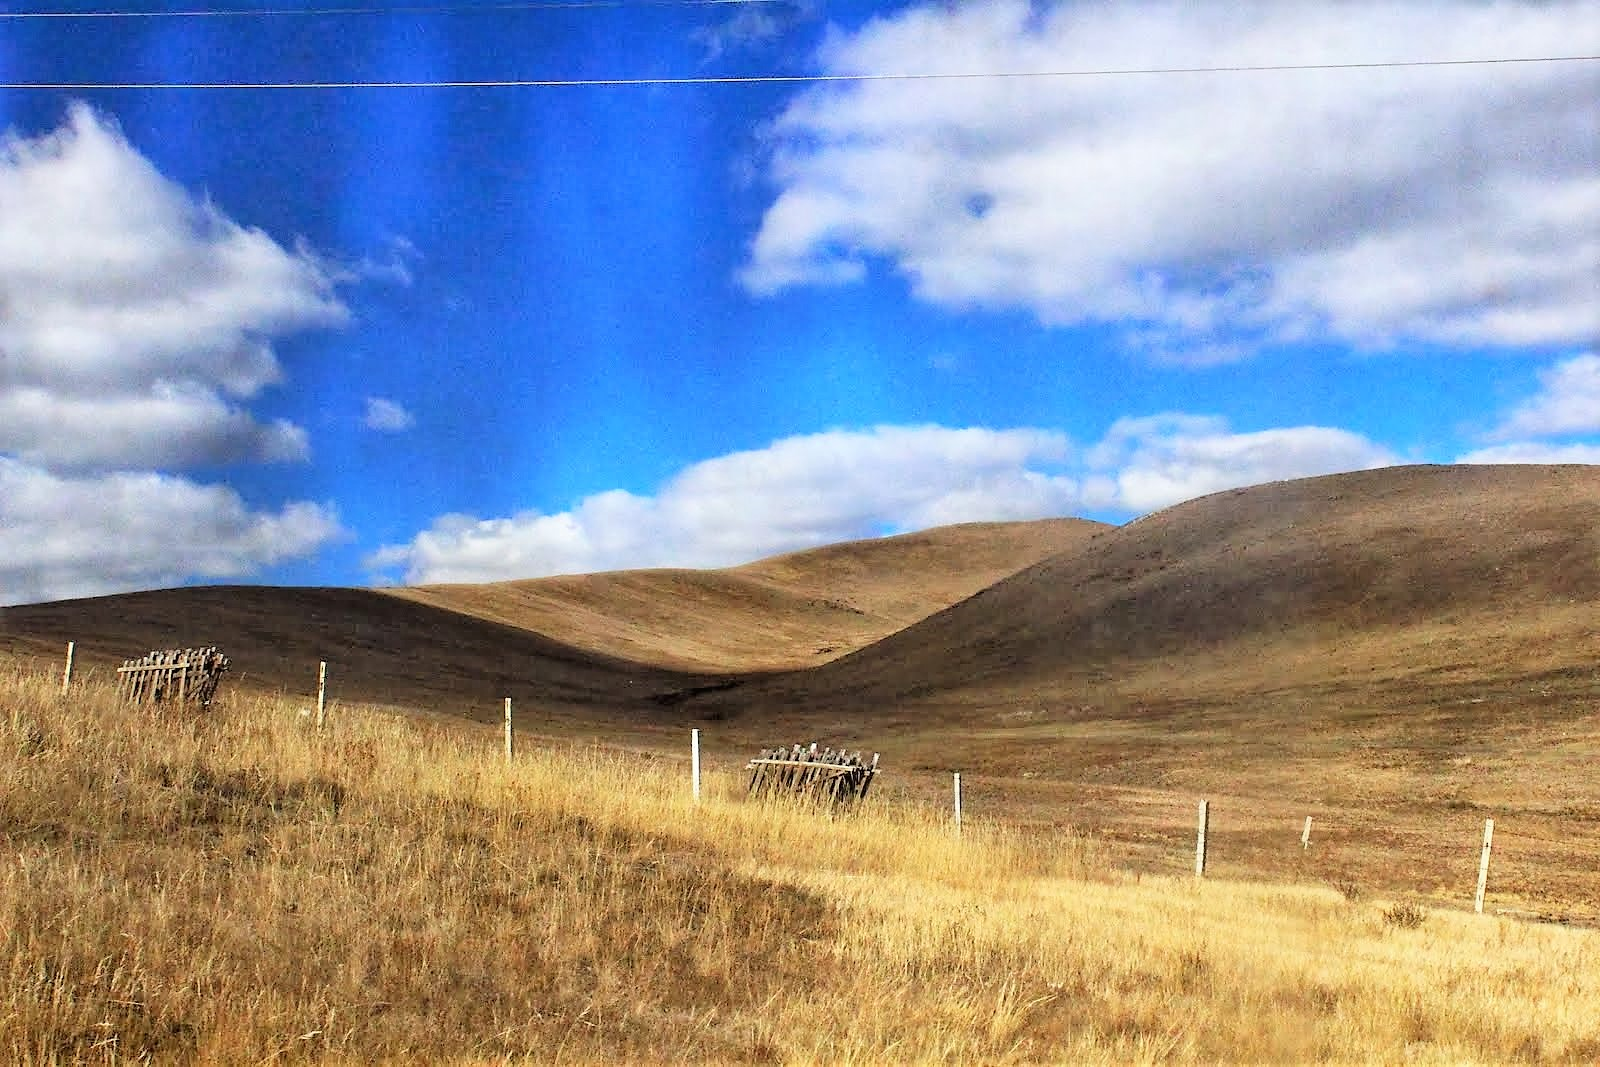 Mongolia - Nothing but pretty